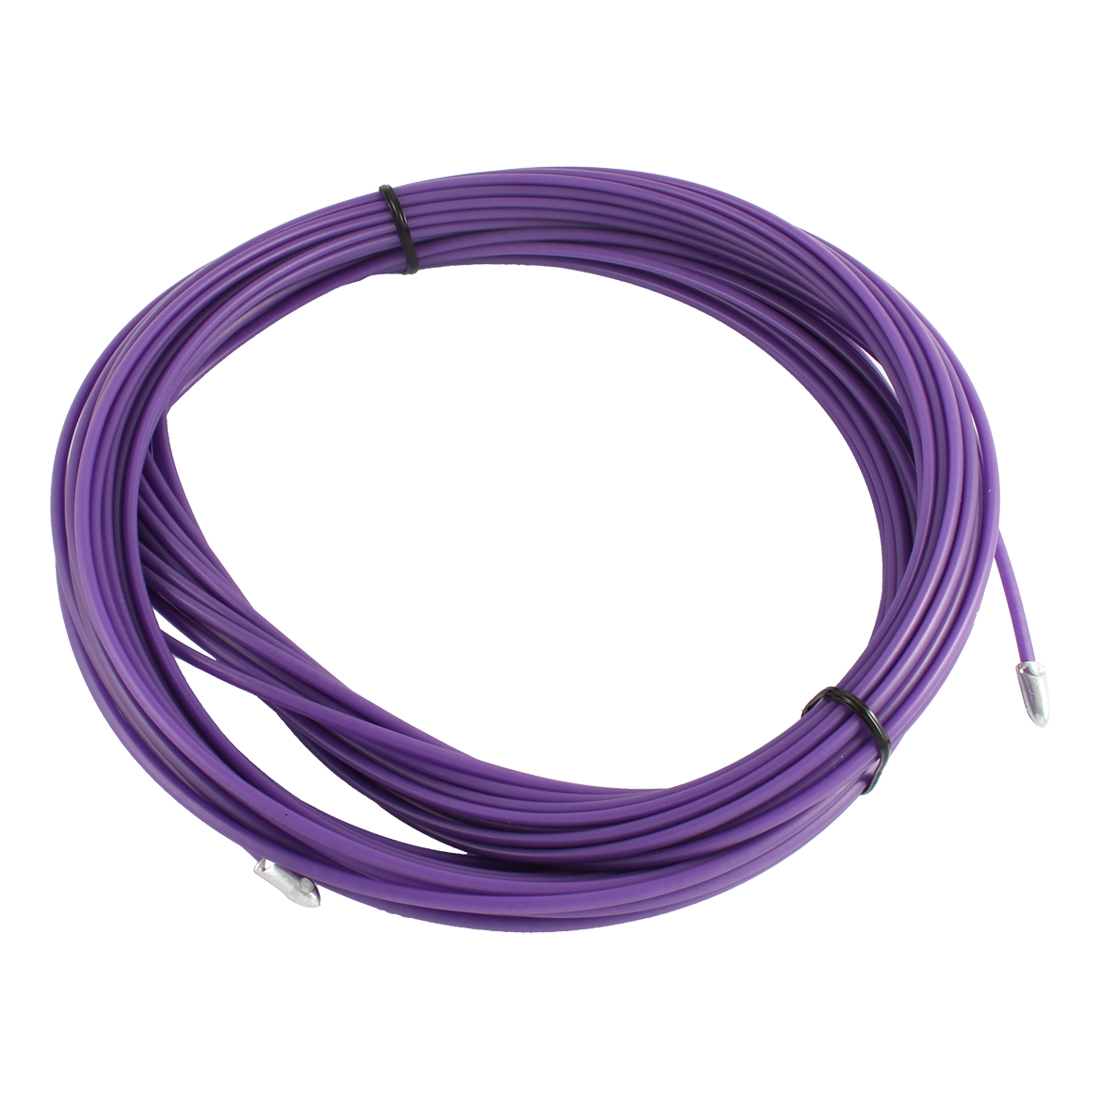 100Ft 30m Long 3mm Dia Purple Electrical Wire Threader Cable Lead Puller Pulling